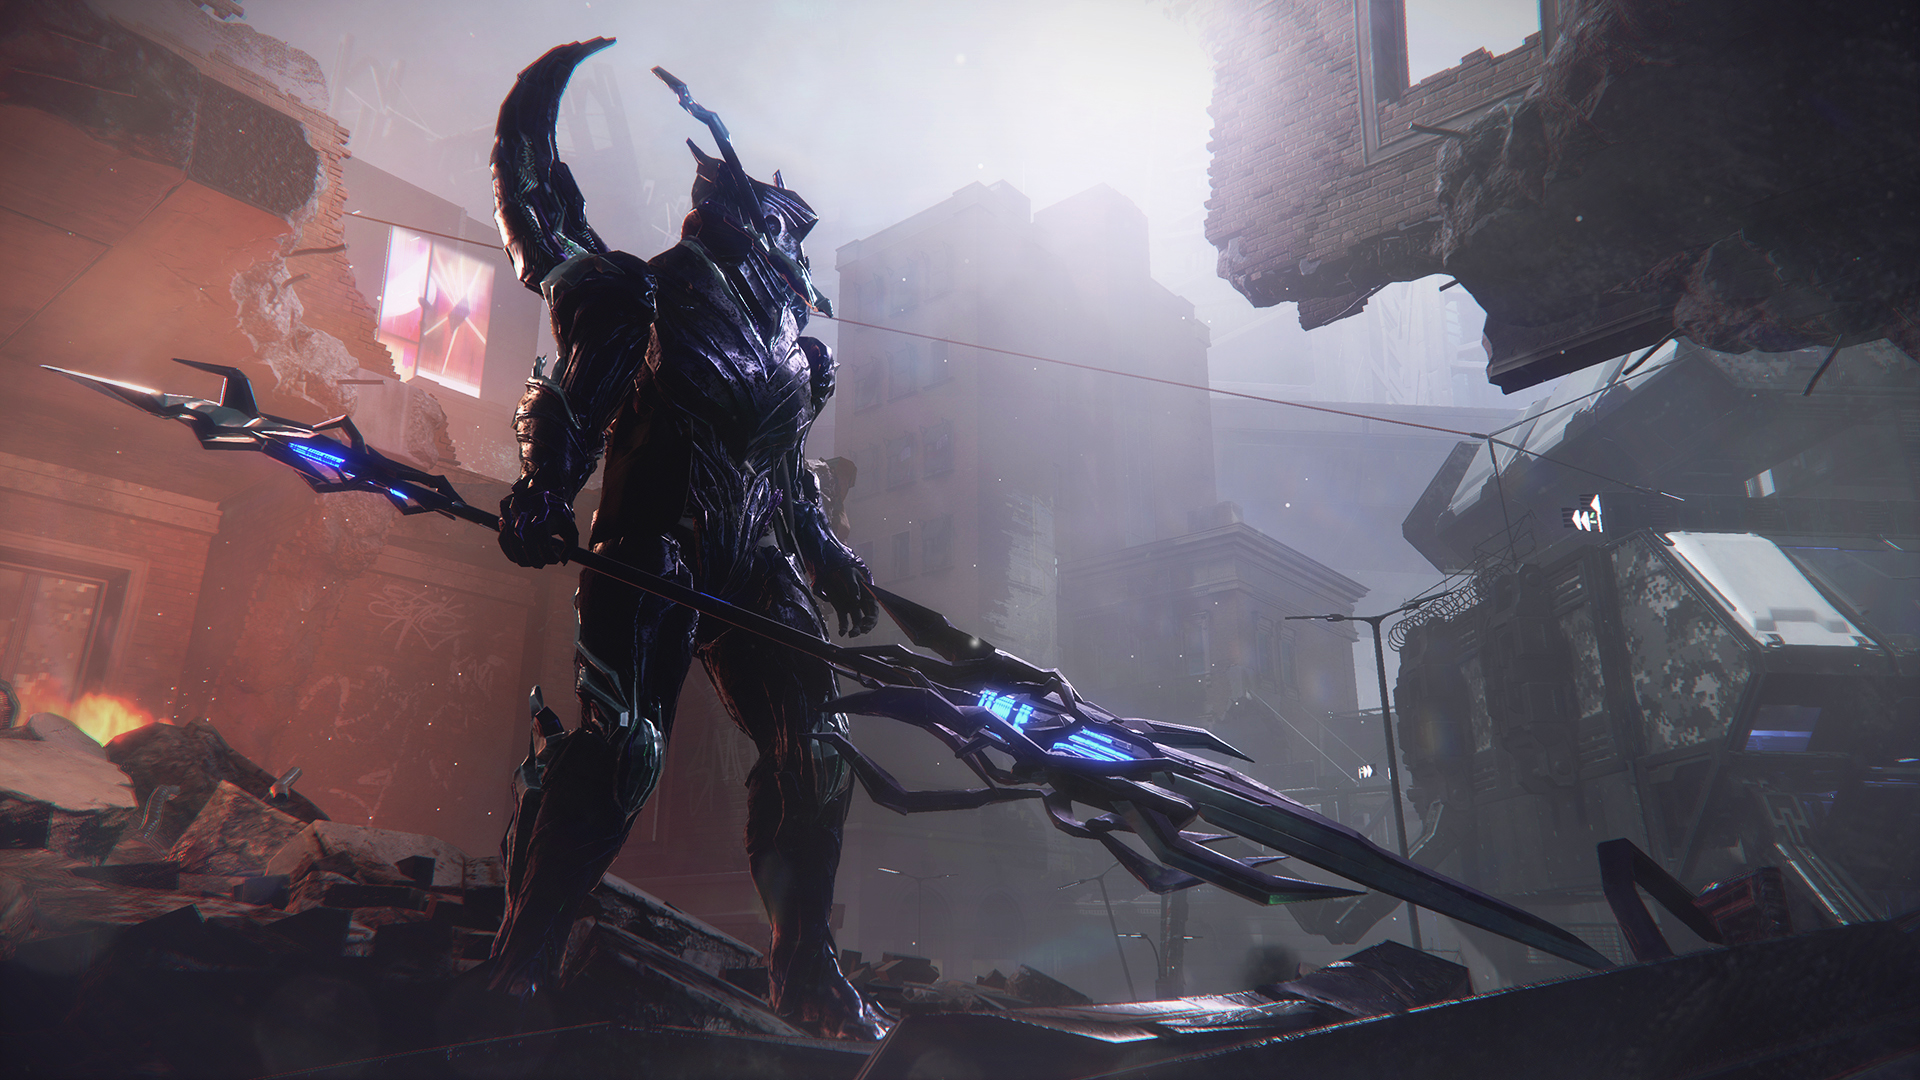 General 1920x1080 video game characters the surge 2 entertainment Upcoming Games focus home interective